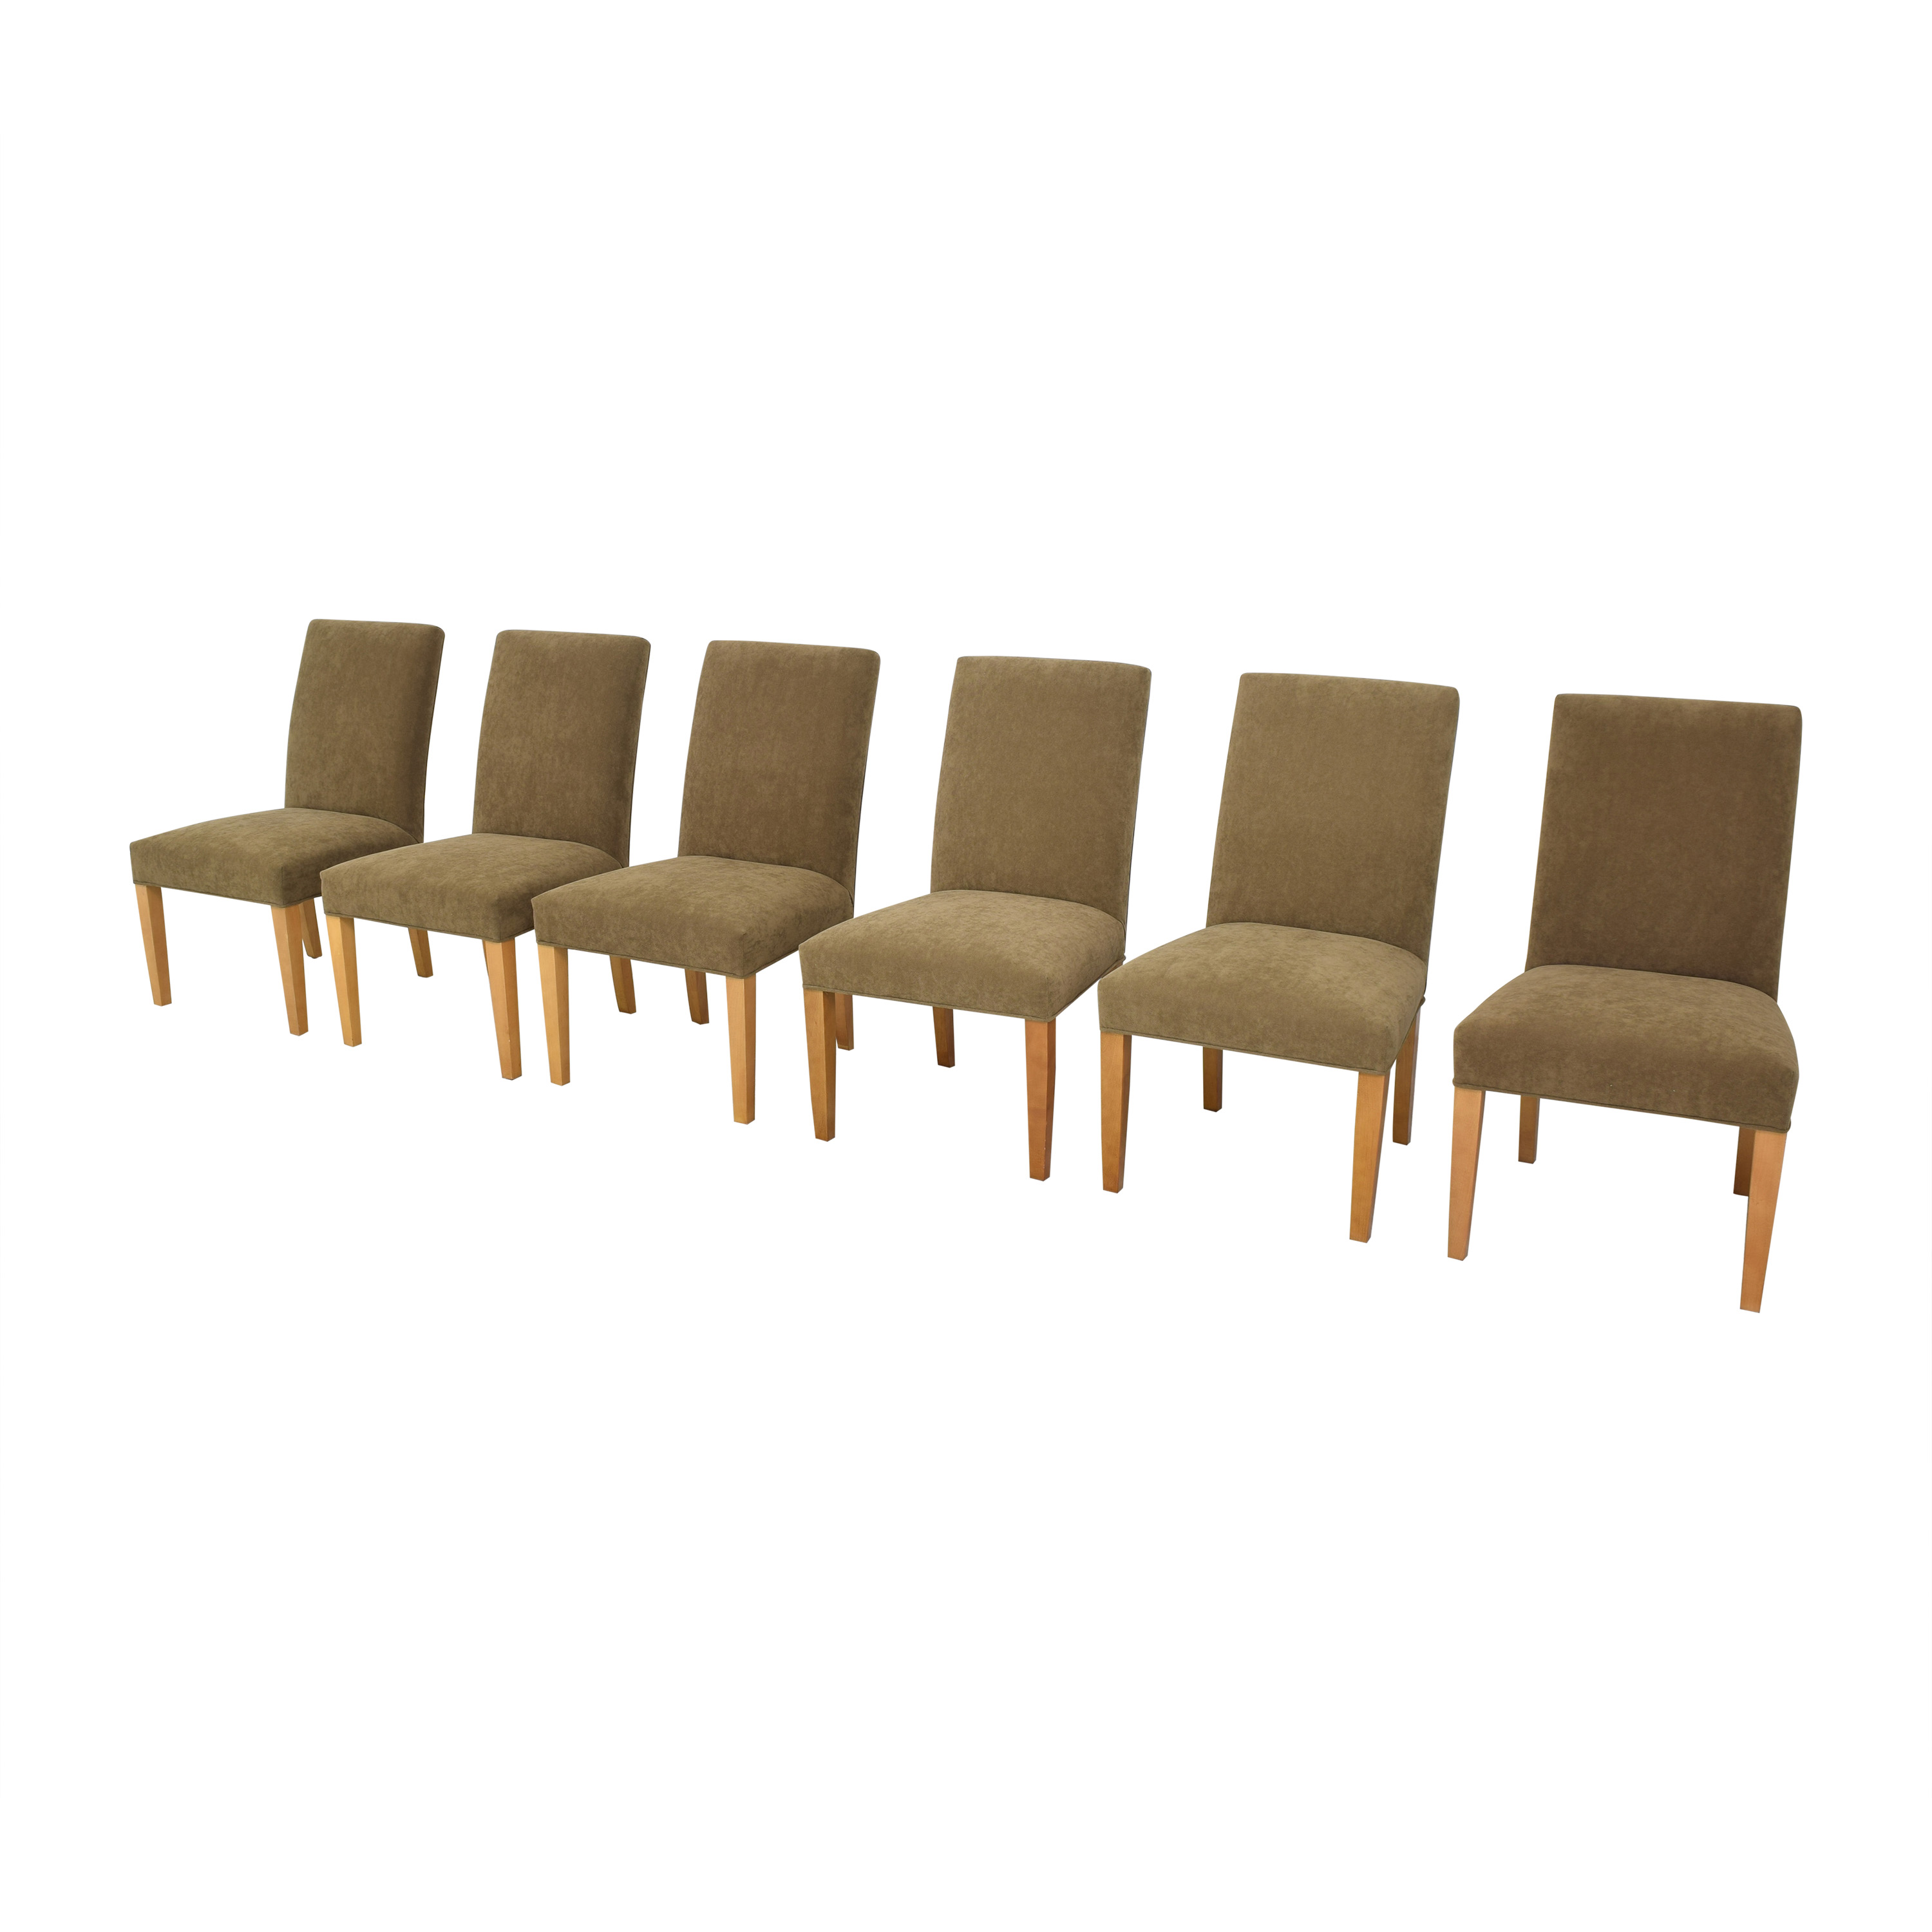 Crate & Barrel Crate & Barrel Miles Dining Chairs